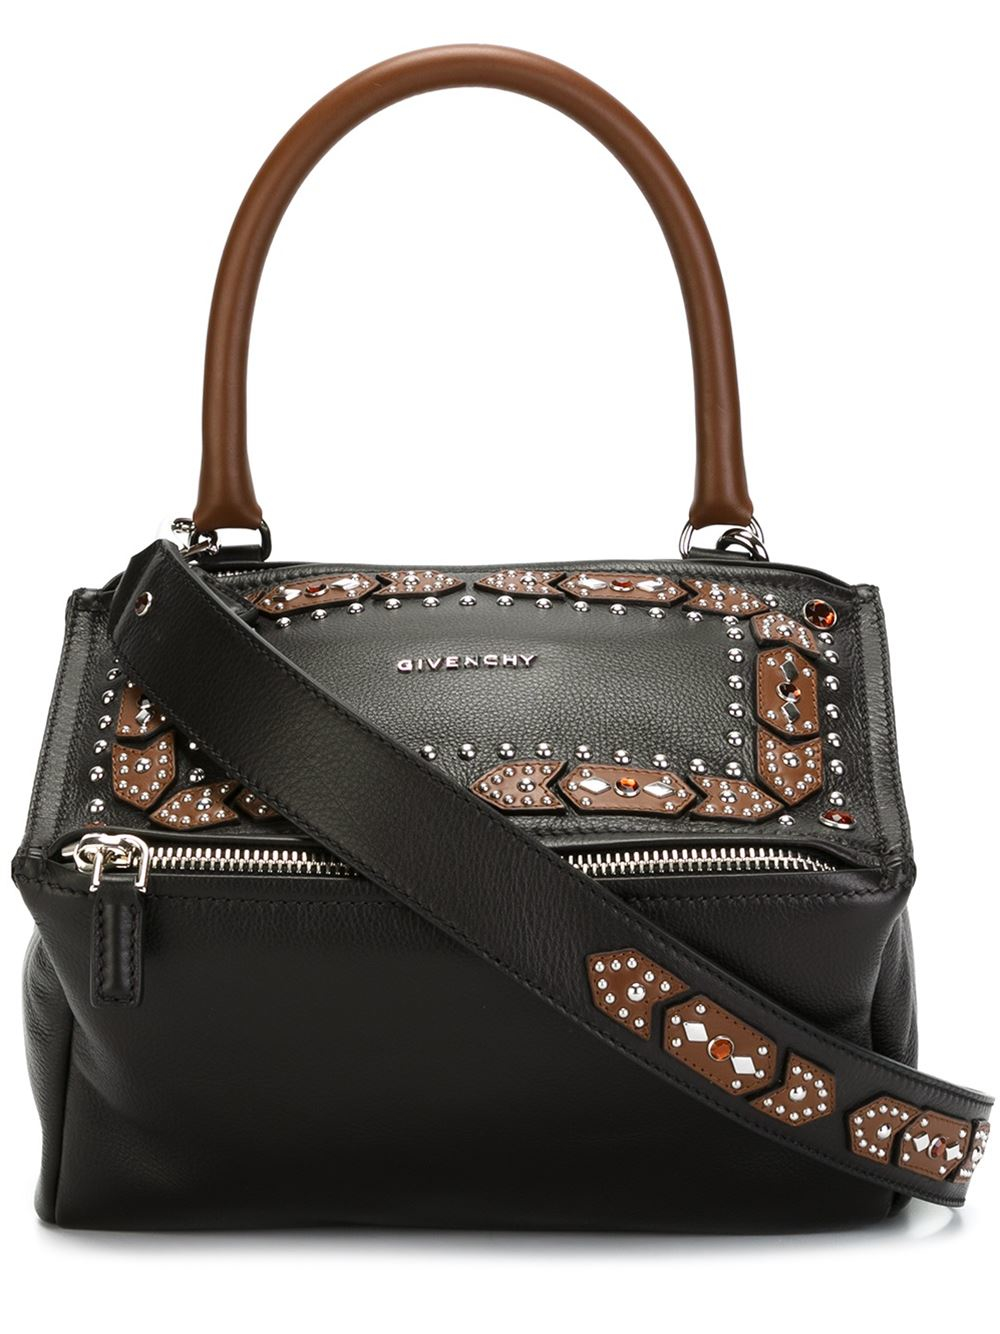 givenchy small pandora shoulder bag in black lyst